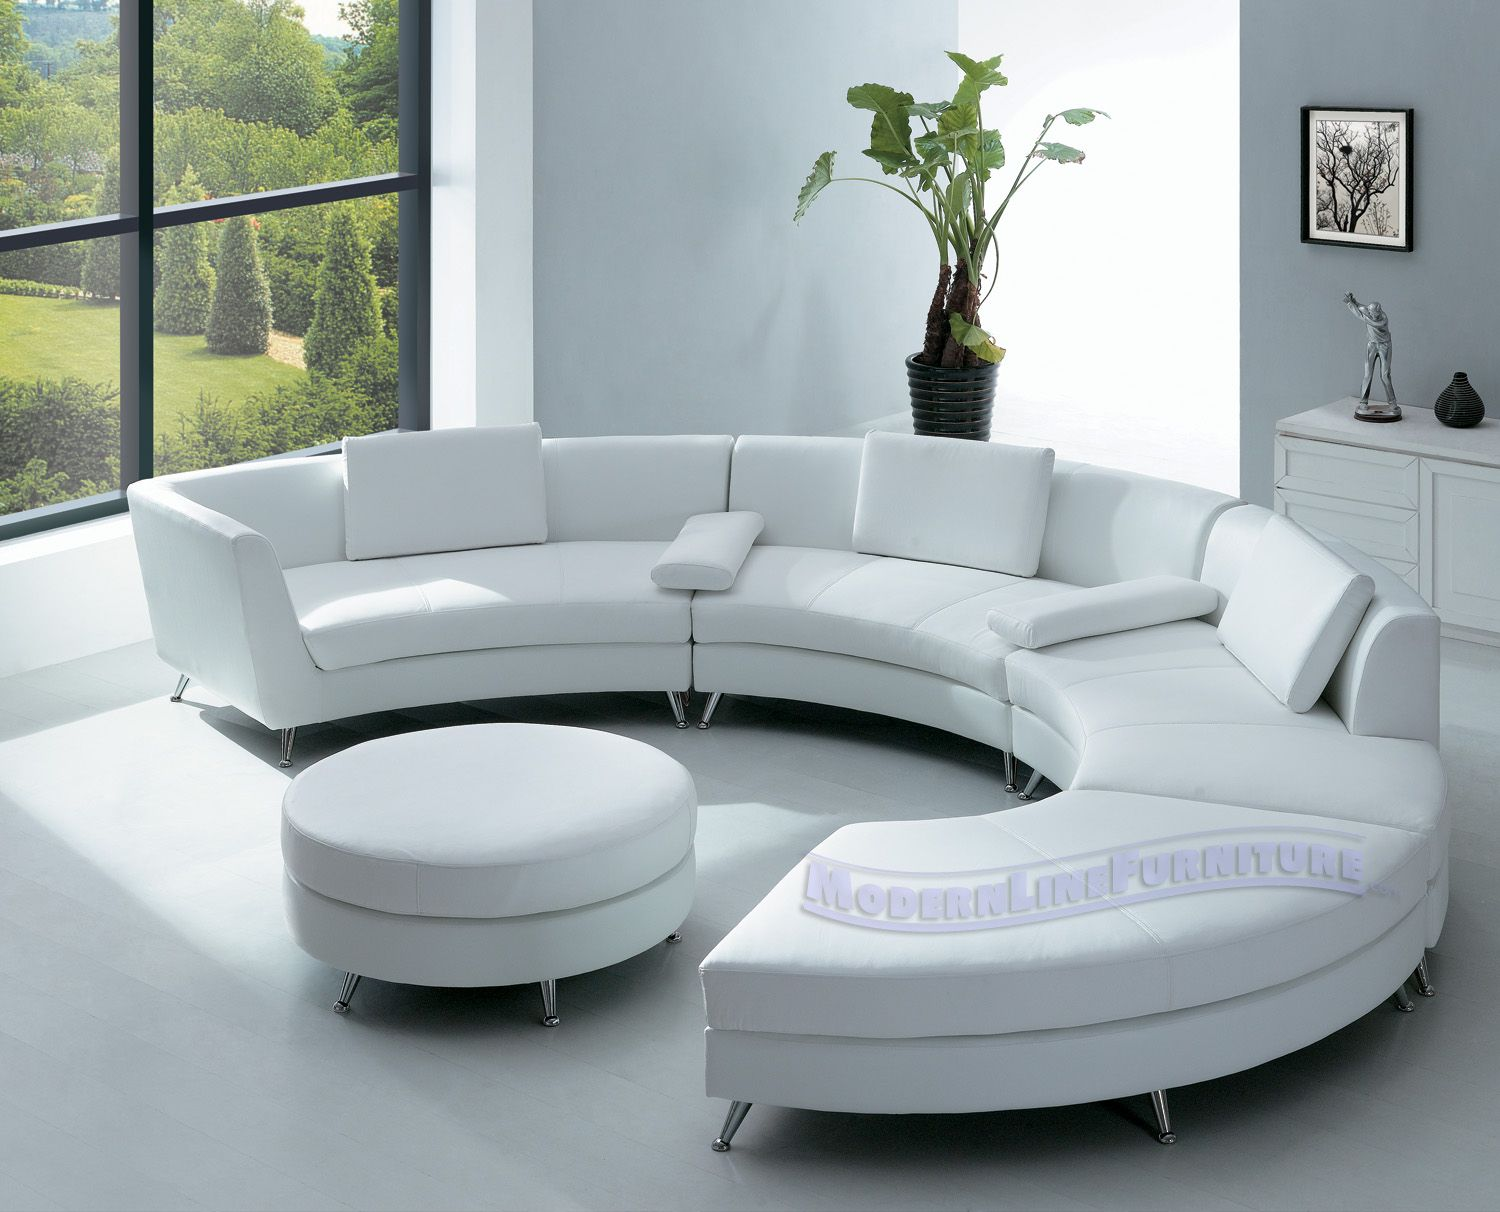 Attrayant Contemporary Furniture Design White Leather Sectional Sofa With Ottoman And  Optional Multifunction Table